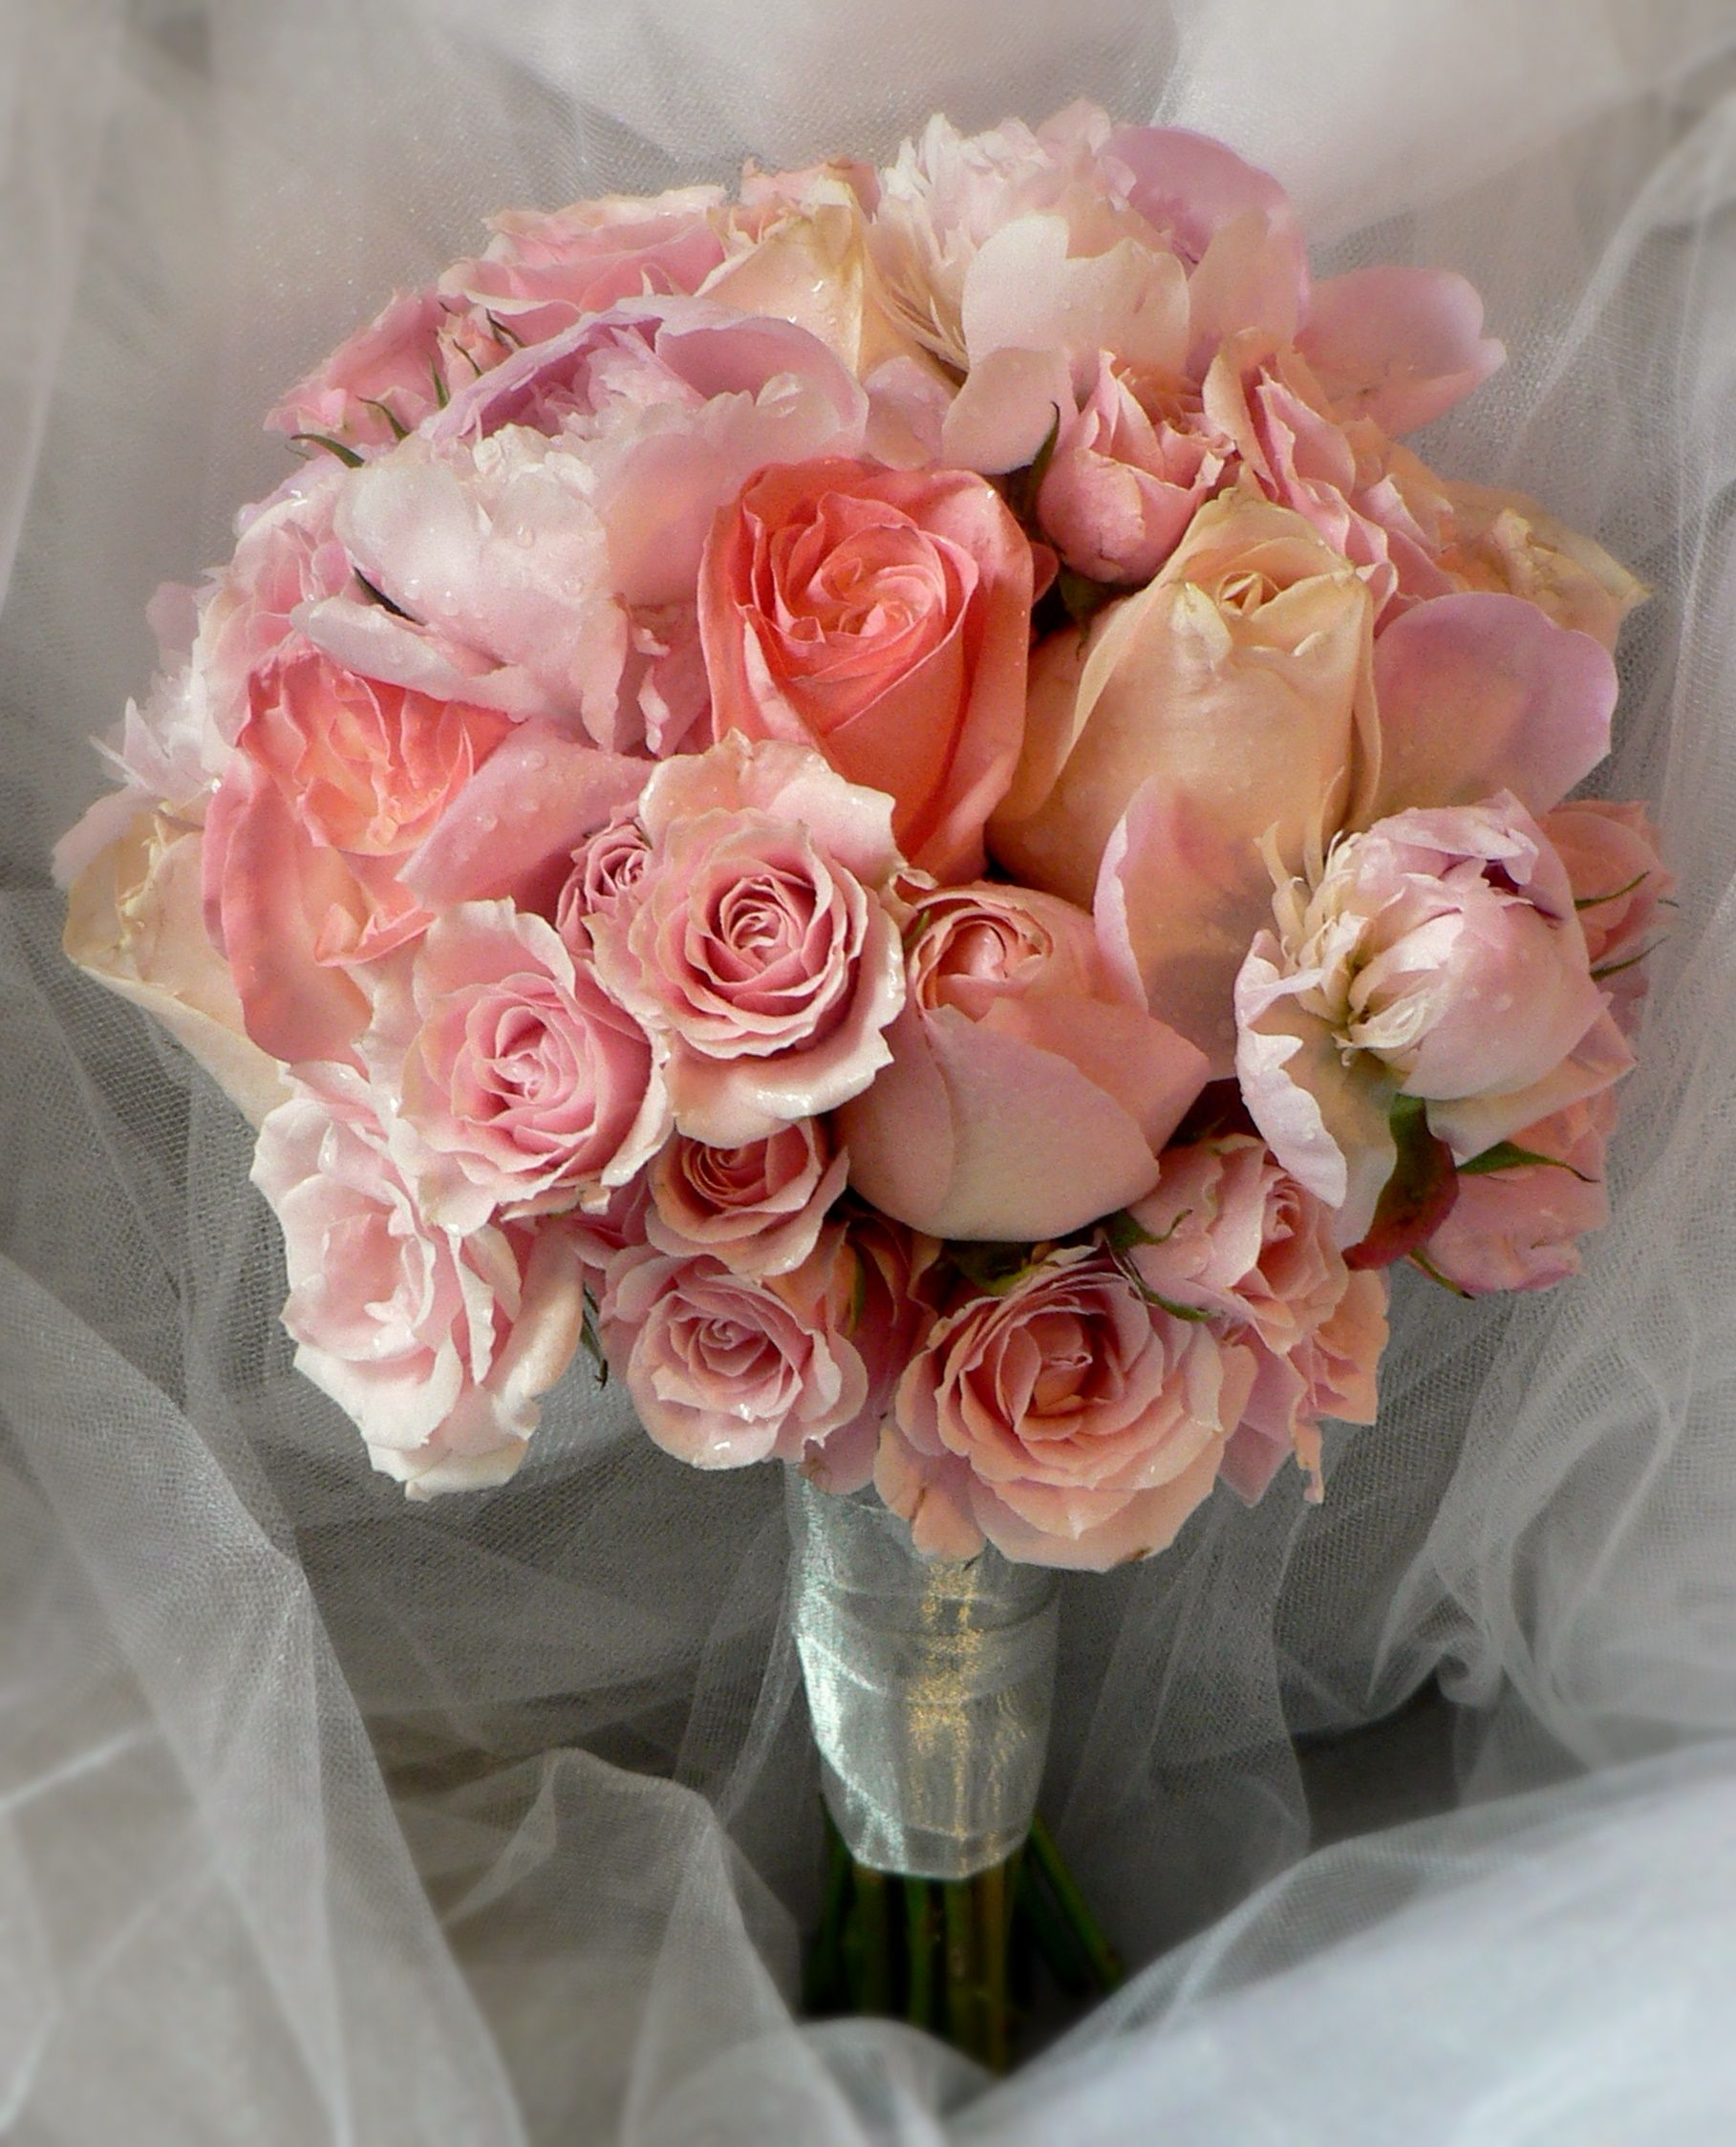 Mixed Roses, Spray Roses & Peony Bouquet | Roses - Bouquets | Pinterest